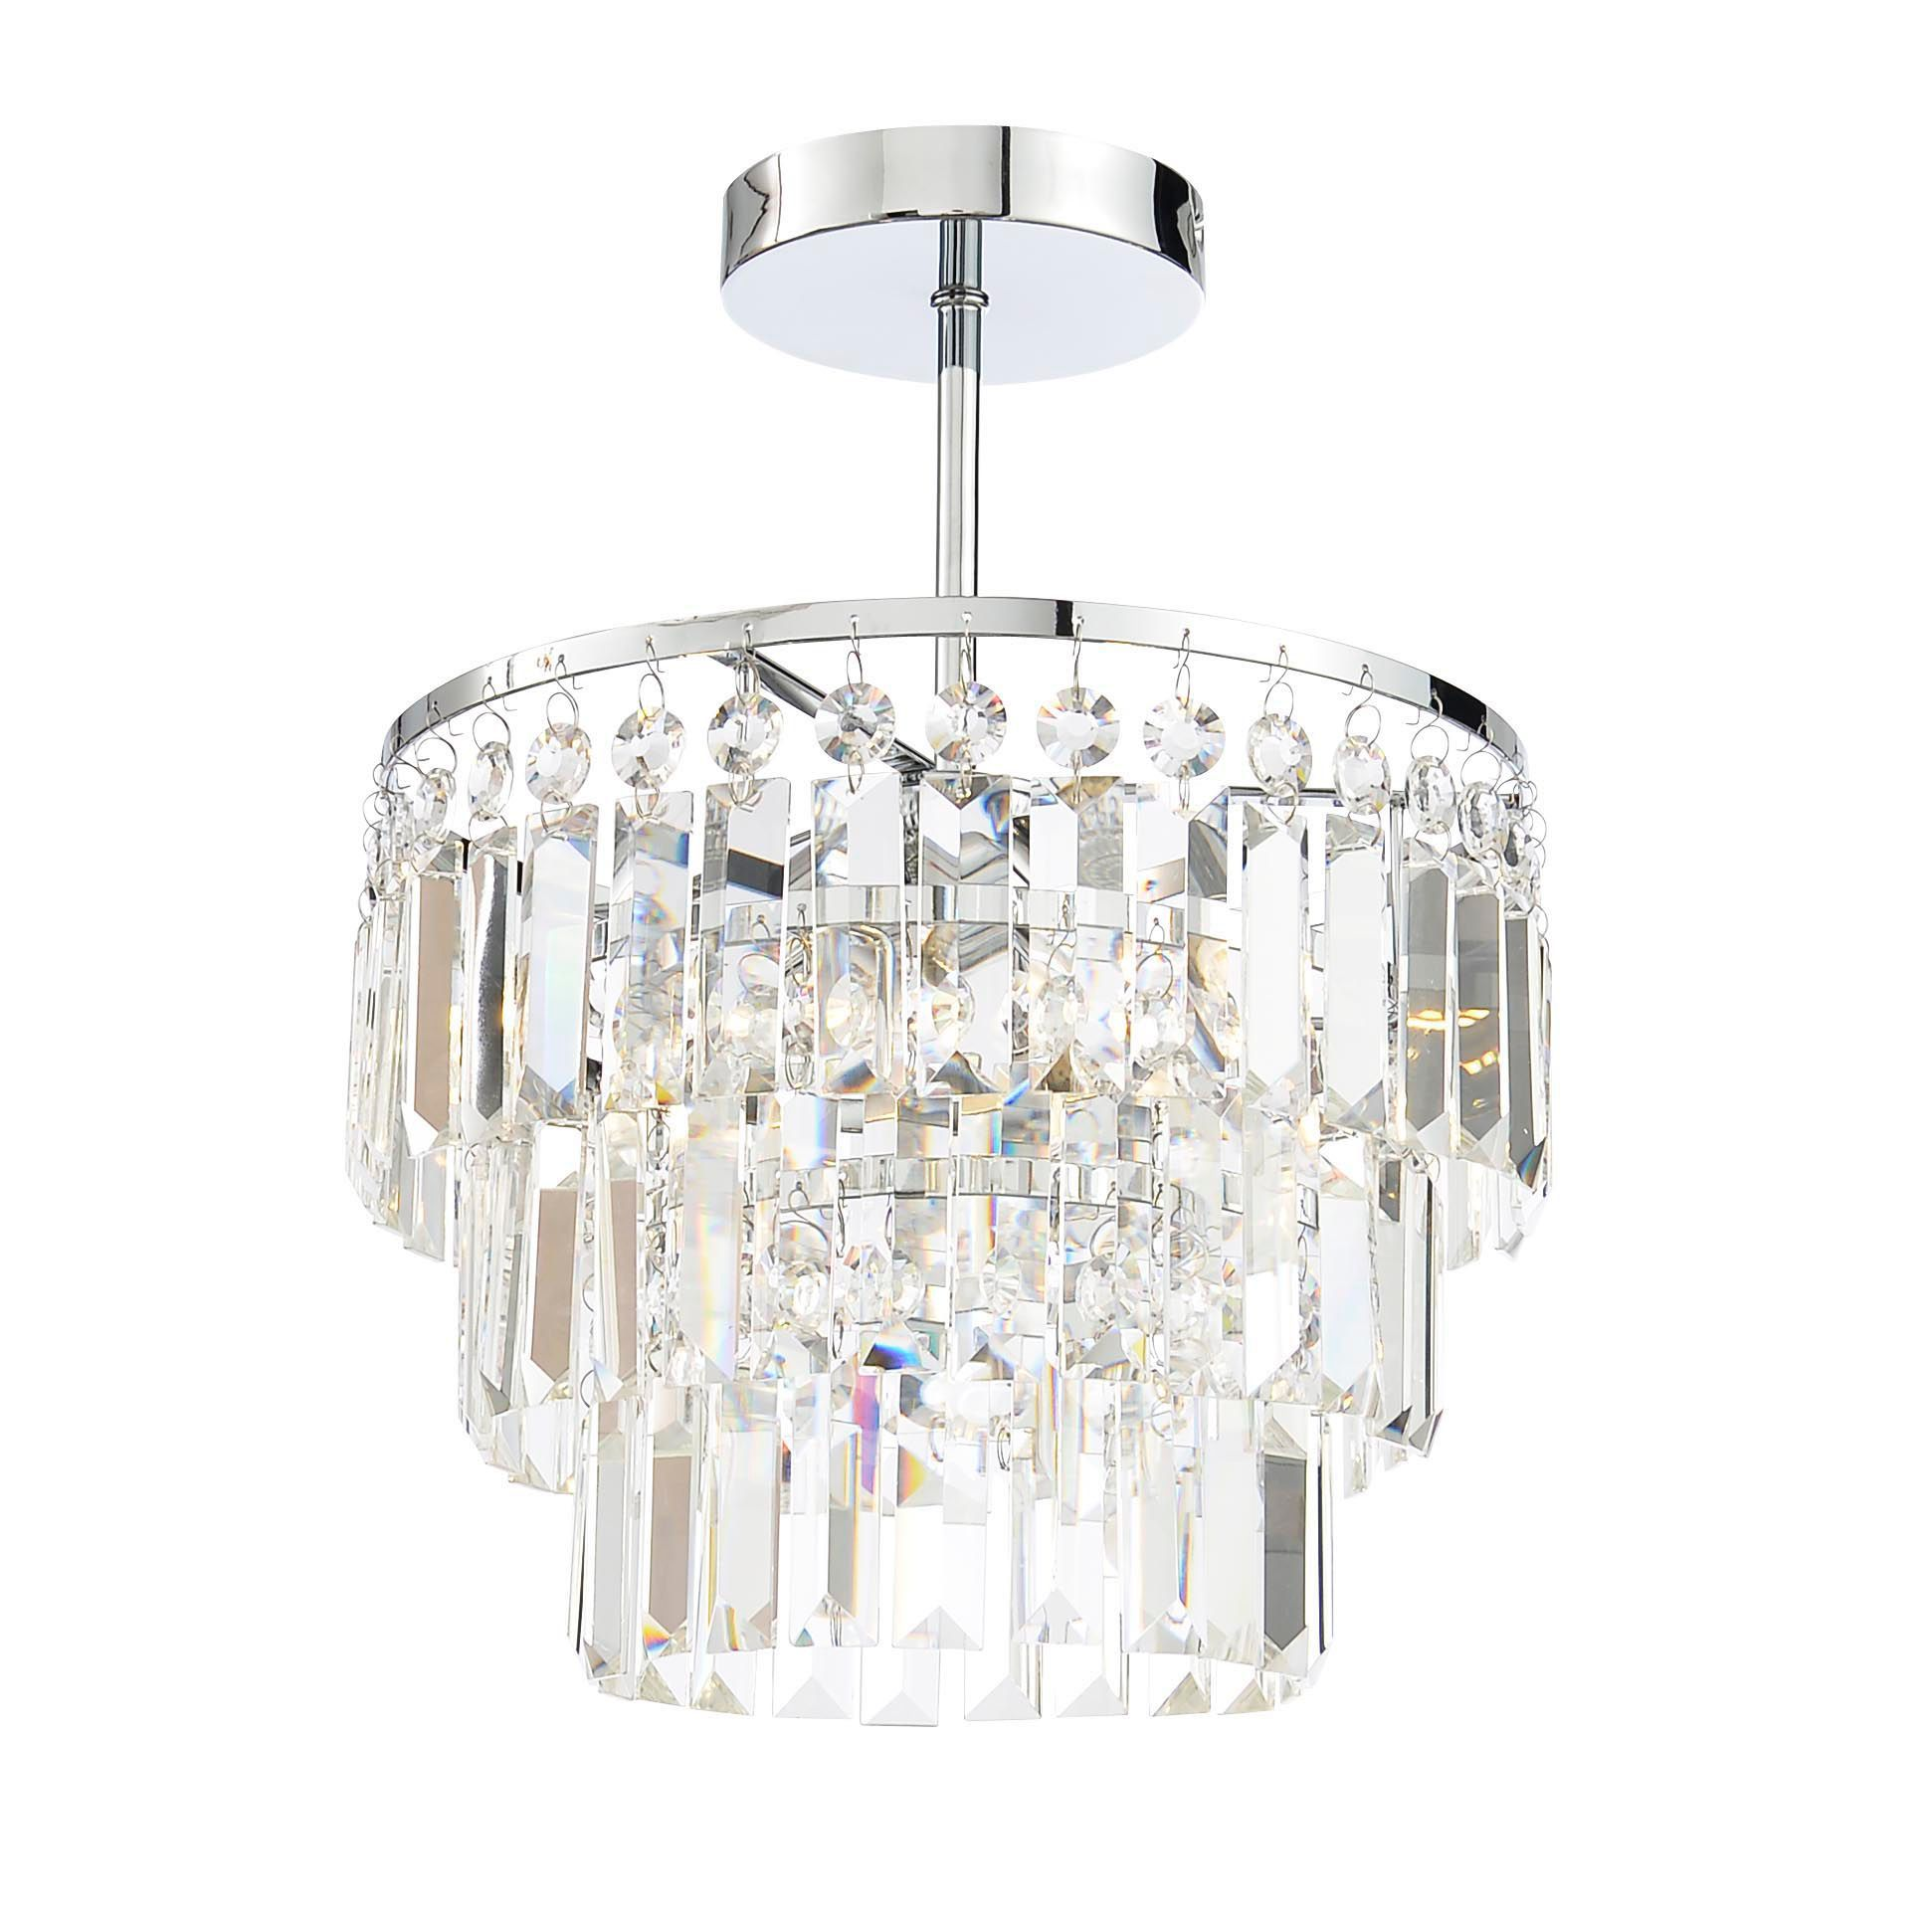 3 Bar Pendant Light Hanging Chrome Effect 3 Way Mounted: Bargo Clear Chrome Effect 3 Lamp Bathroom Ceiling Light